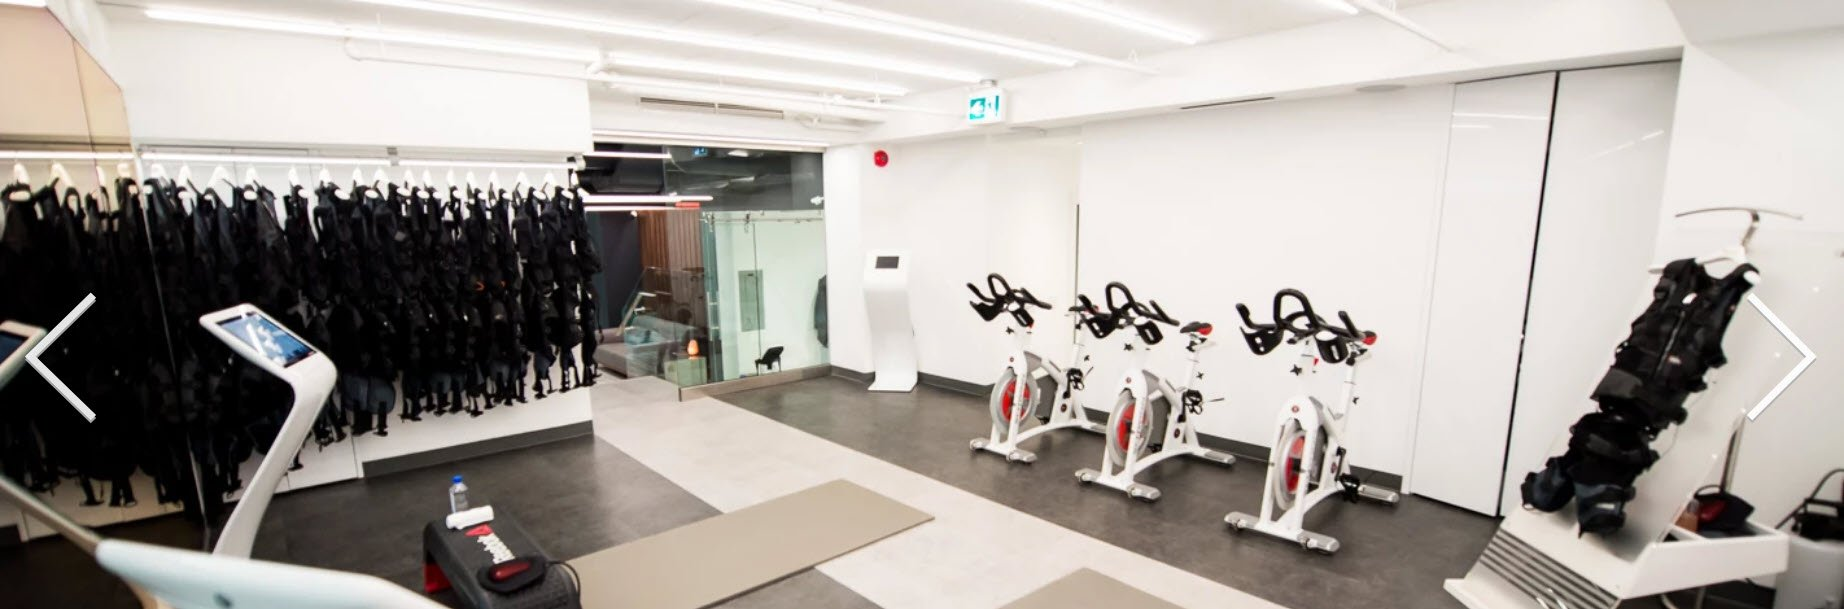 Exercise machines in workout area